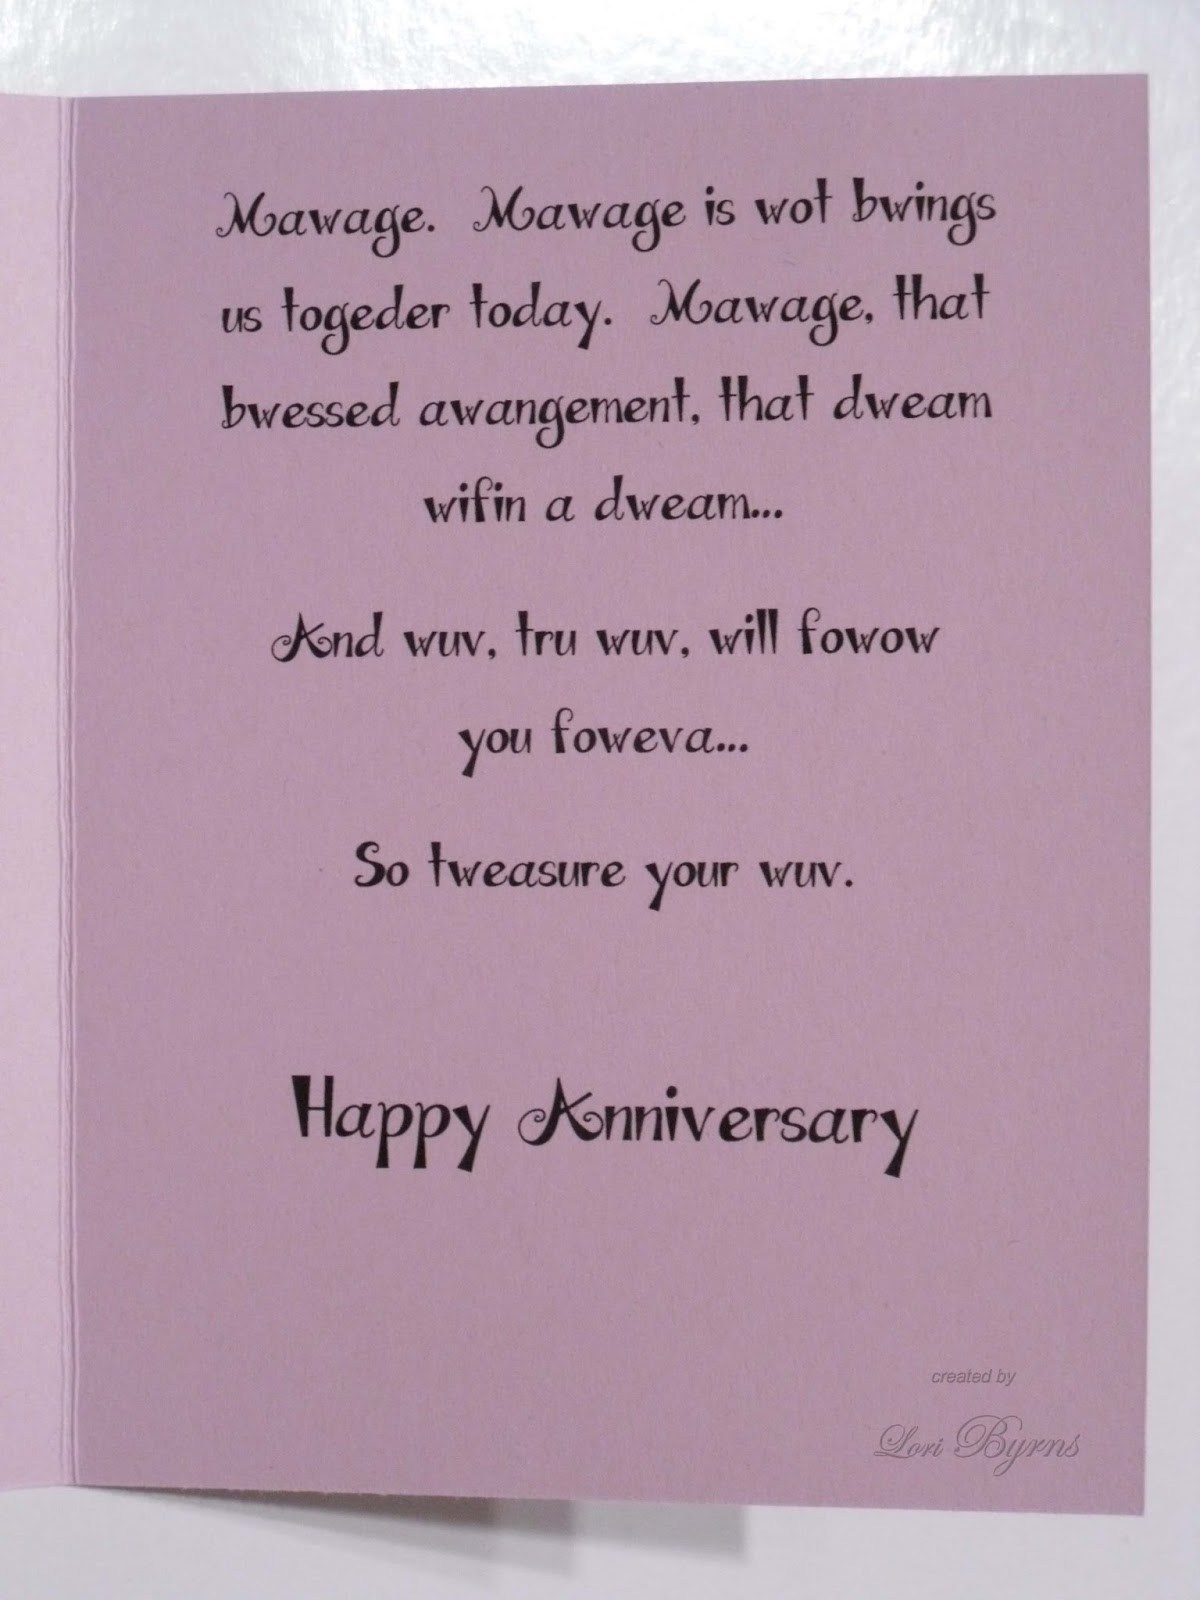 25th Wedding Anniversary Gift Ideas For Sister : 25th Wedding Anniversary Cards For Sister And Brother In LawWedding ...